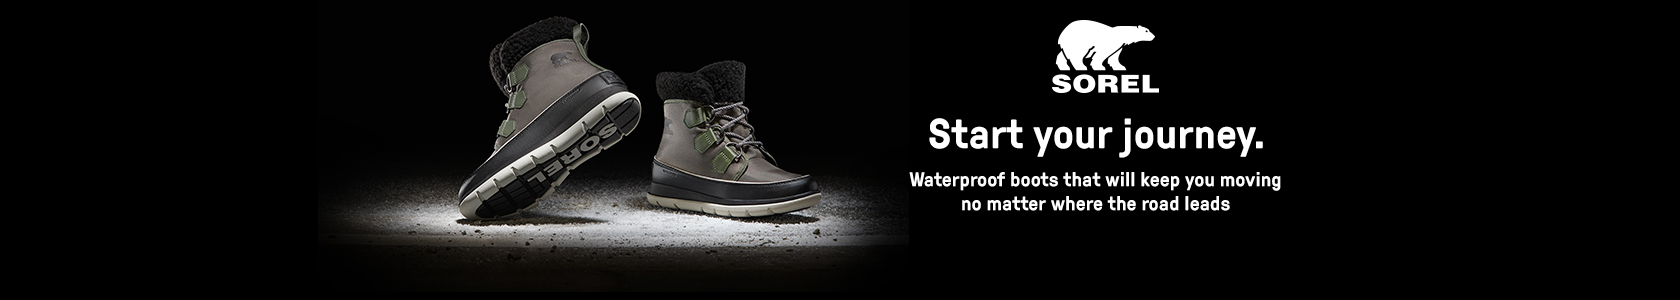 SOREL boots on the black background